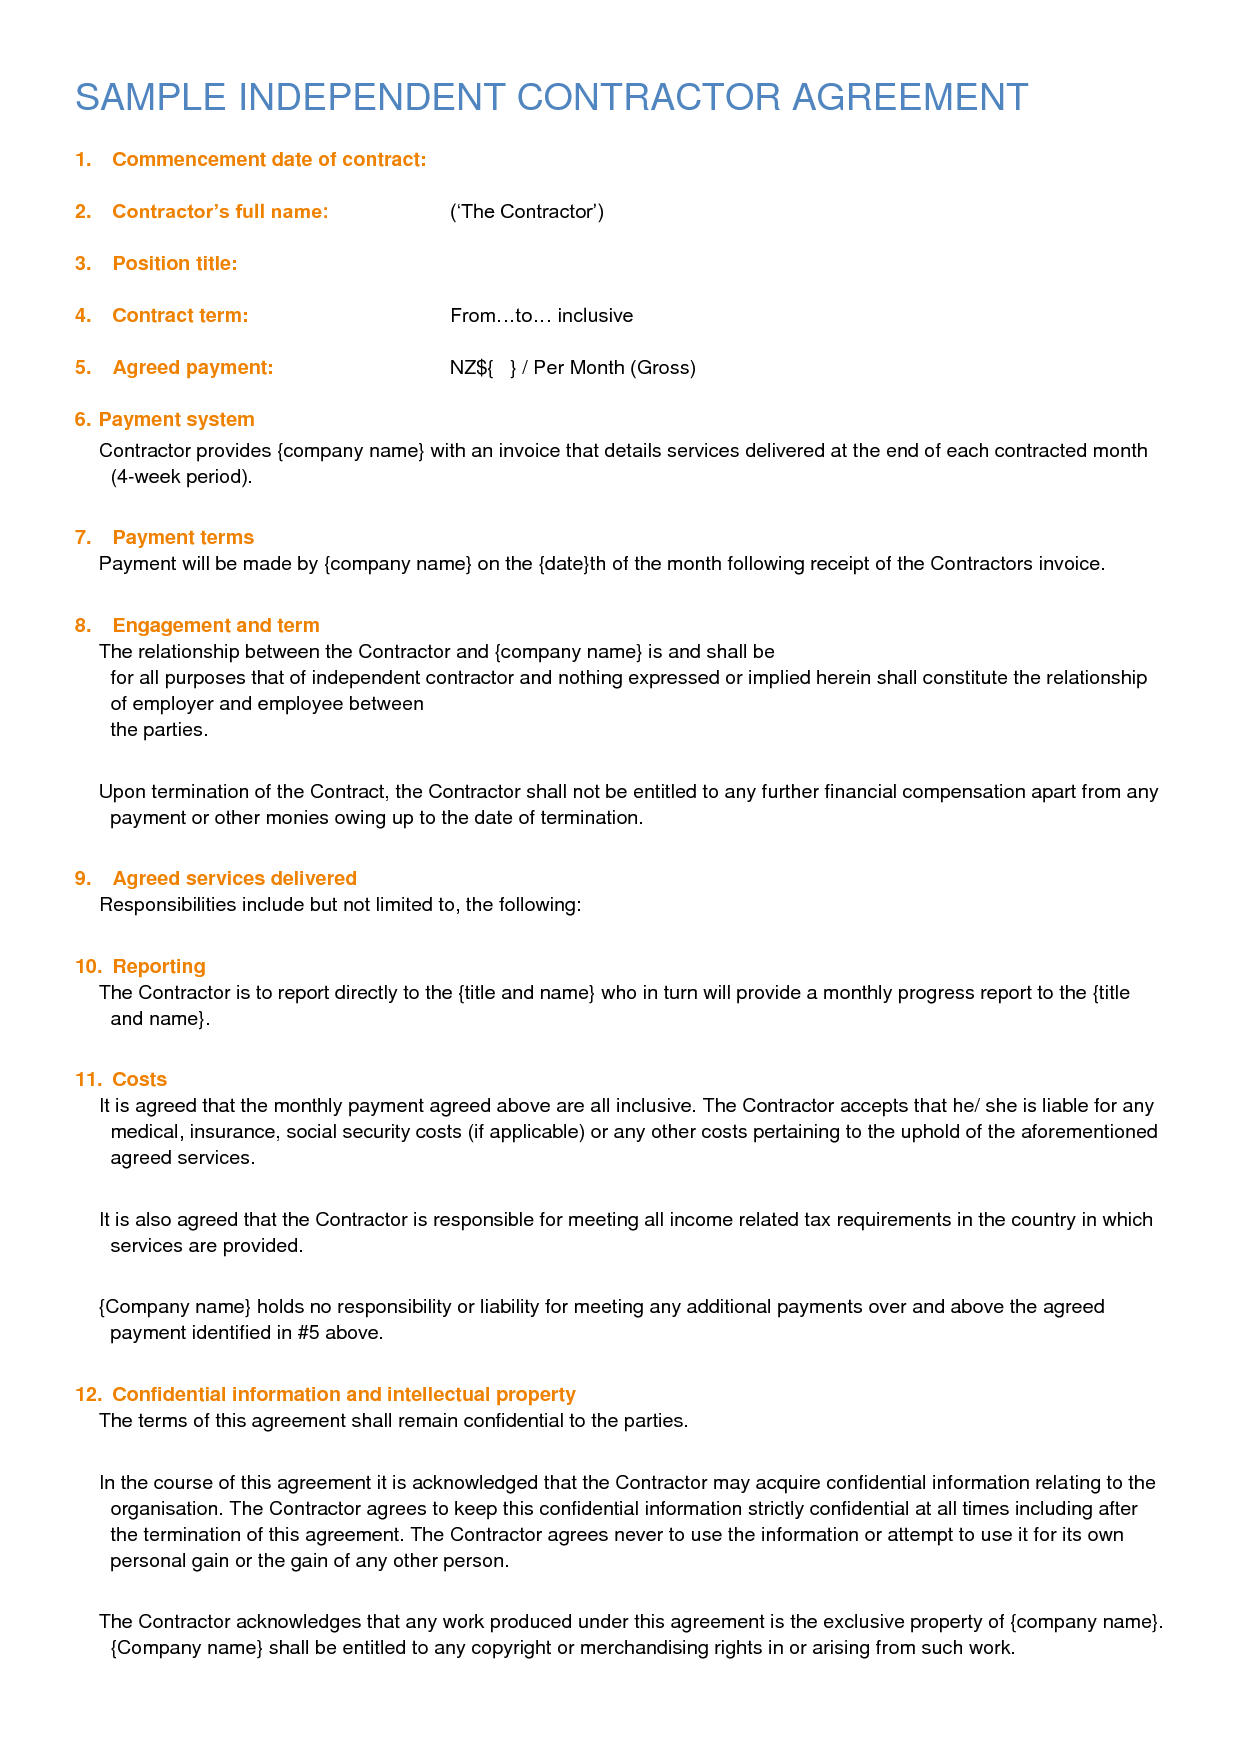 independent contractor agreement sample by sburnet2 ...